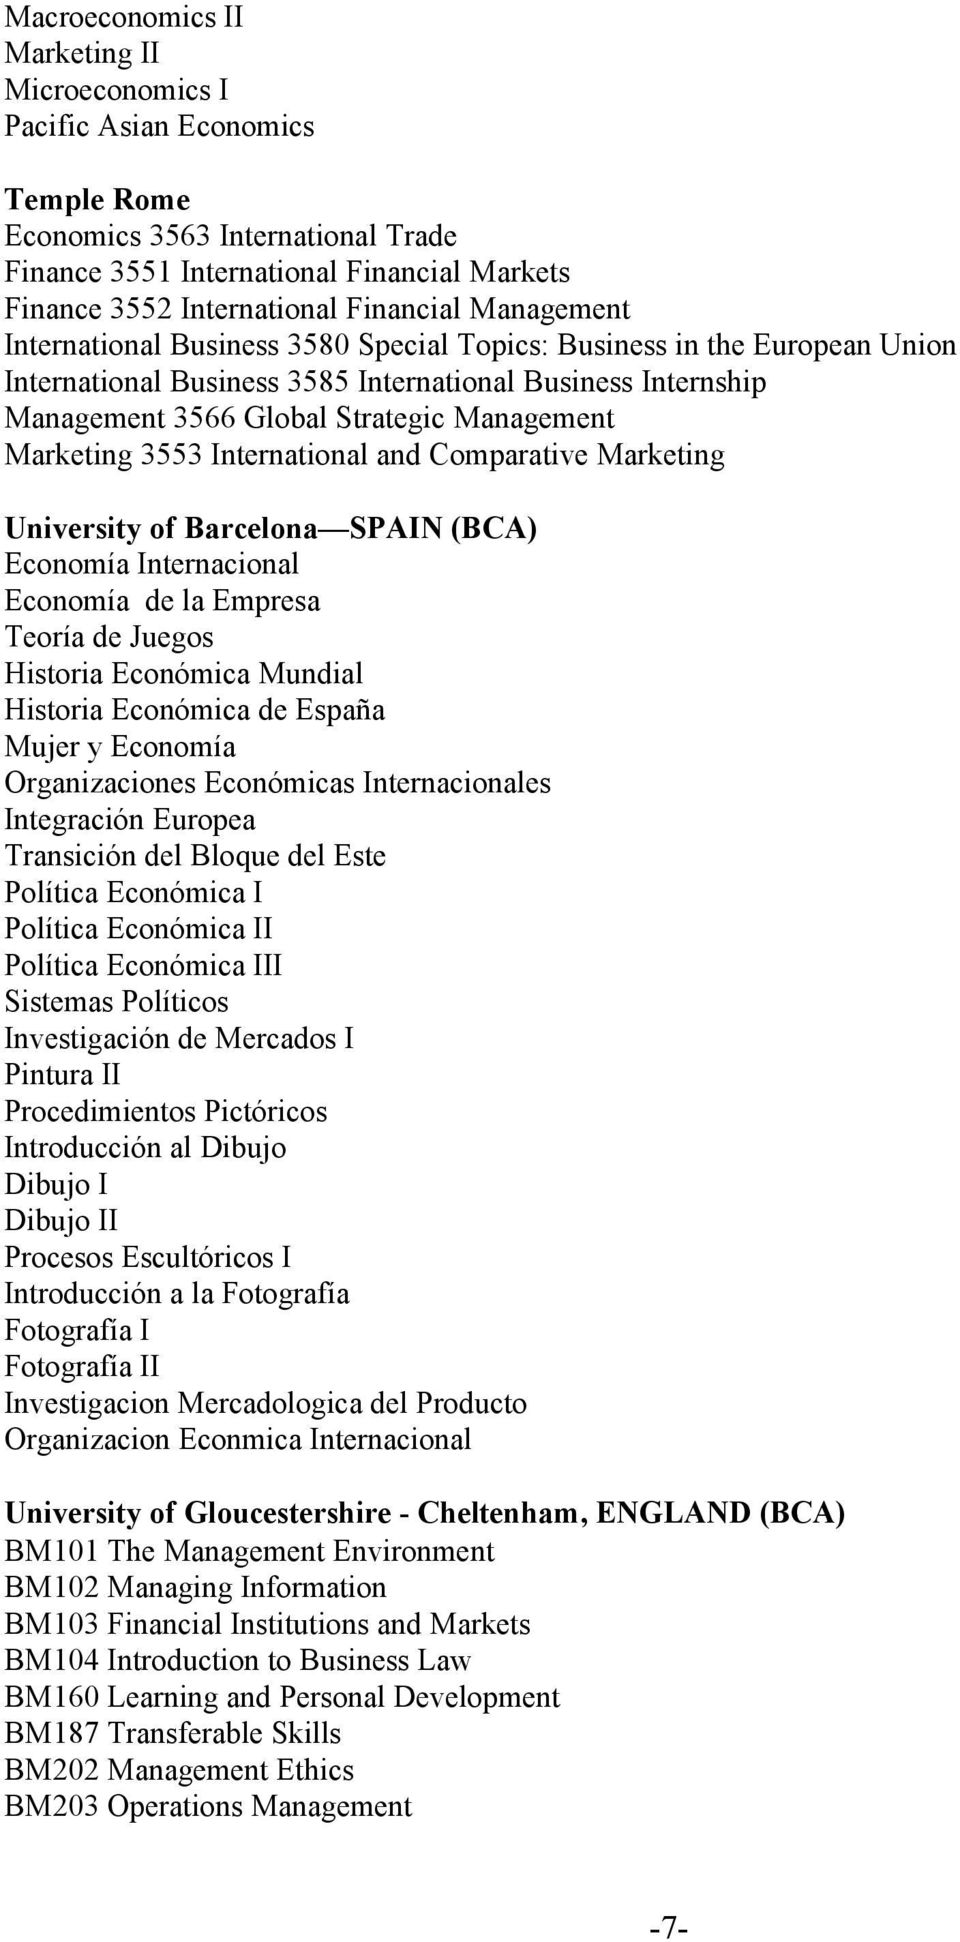 Management Marketing 3553 International and Comparative Marketing University of Barcelona SPAIN (BCA) Economía Internacional Economía de la Empresa Teoría de Juegos Historia Económica Mundial